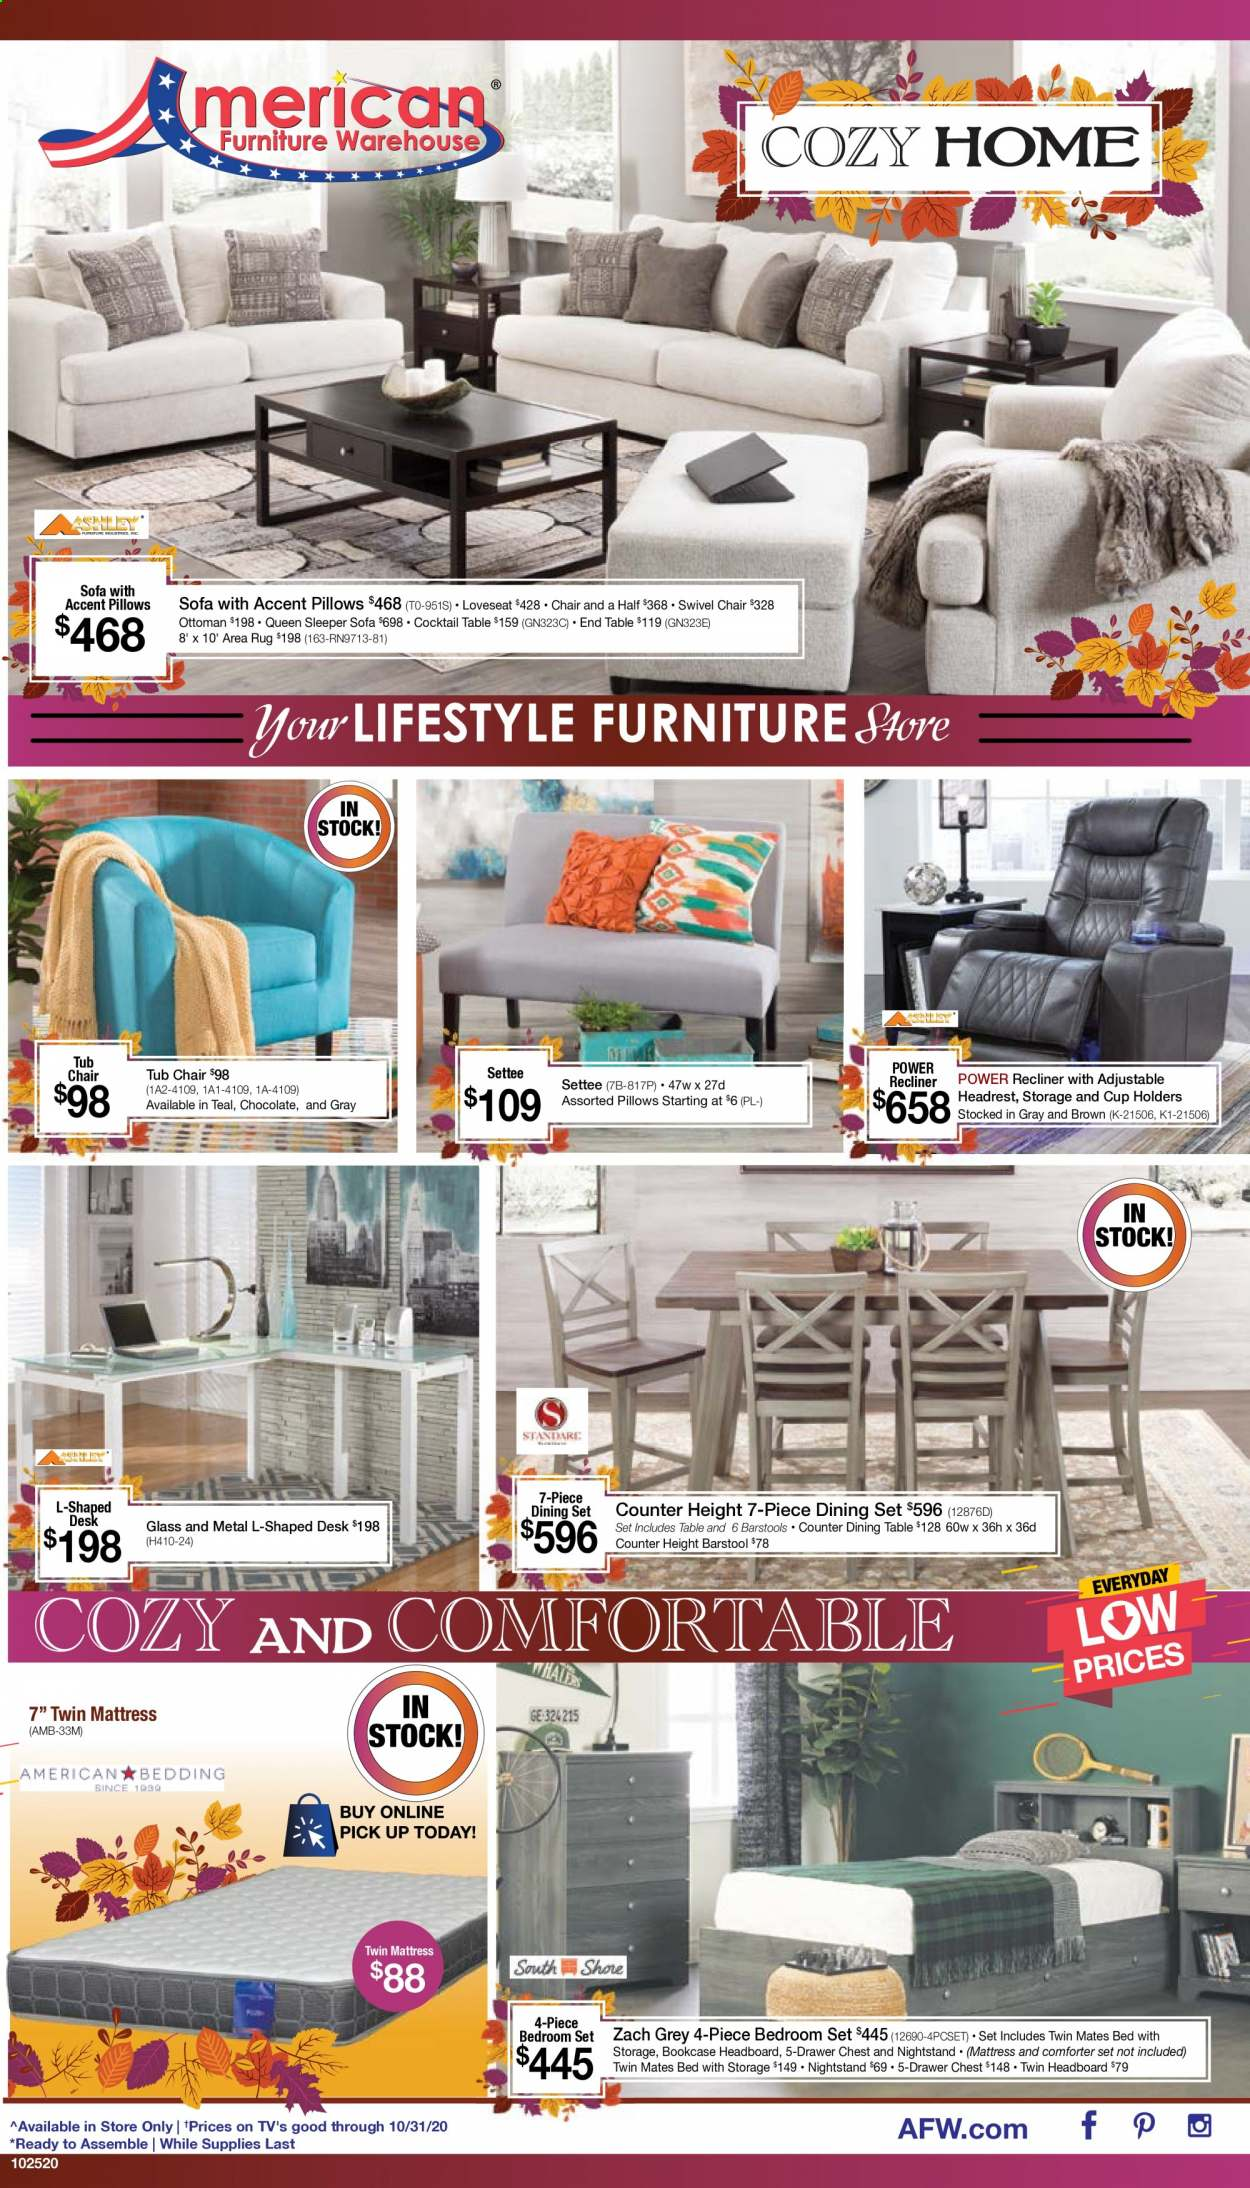 American Furniture Warehouse Flyer - 10.25.2020 - 10.31.2020 - Sales products - dining set, dining table, chair, bar stool, loveseat, sofa, swivel chair, recliner chair, end table, bookcase, ottoman, bed, headboard, mattress, nightstand, comforter, pillow, rug, area rug. Page 1.